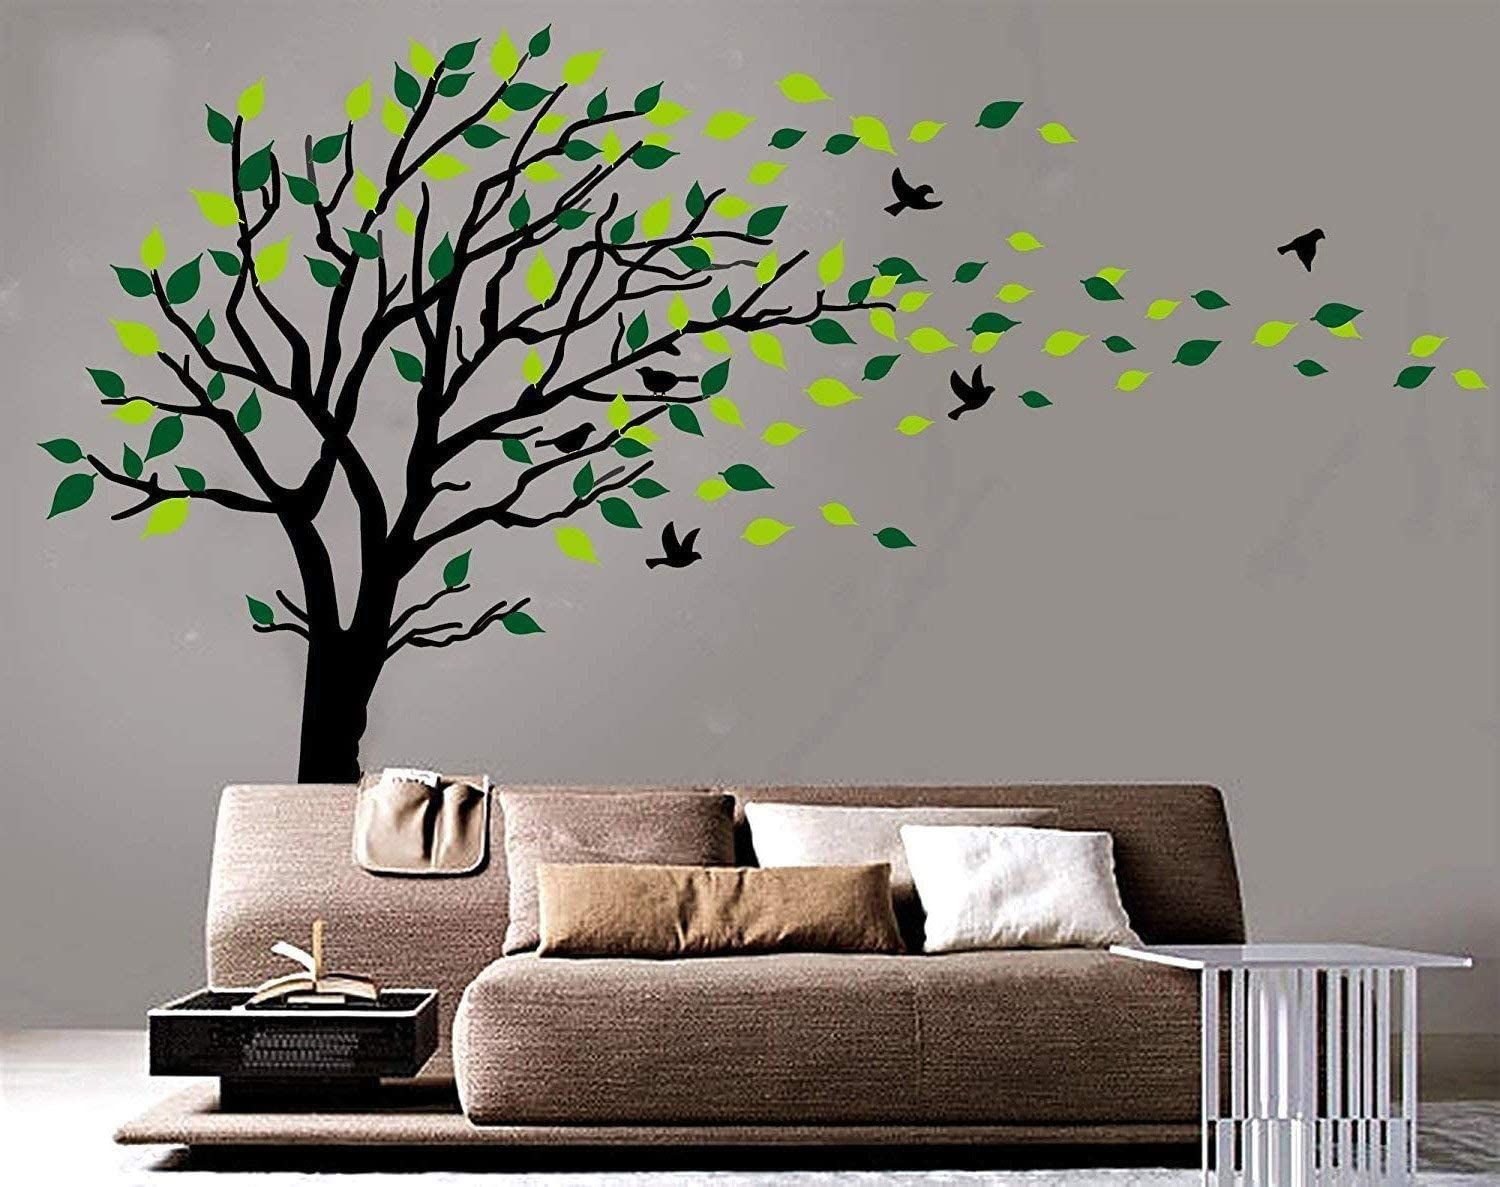 Amazoncom Large Tree Blowing in The Wind Tree Wall Decals Wall 1500x1187